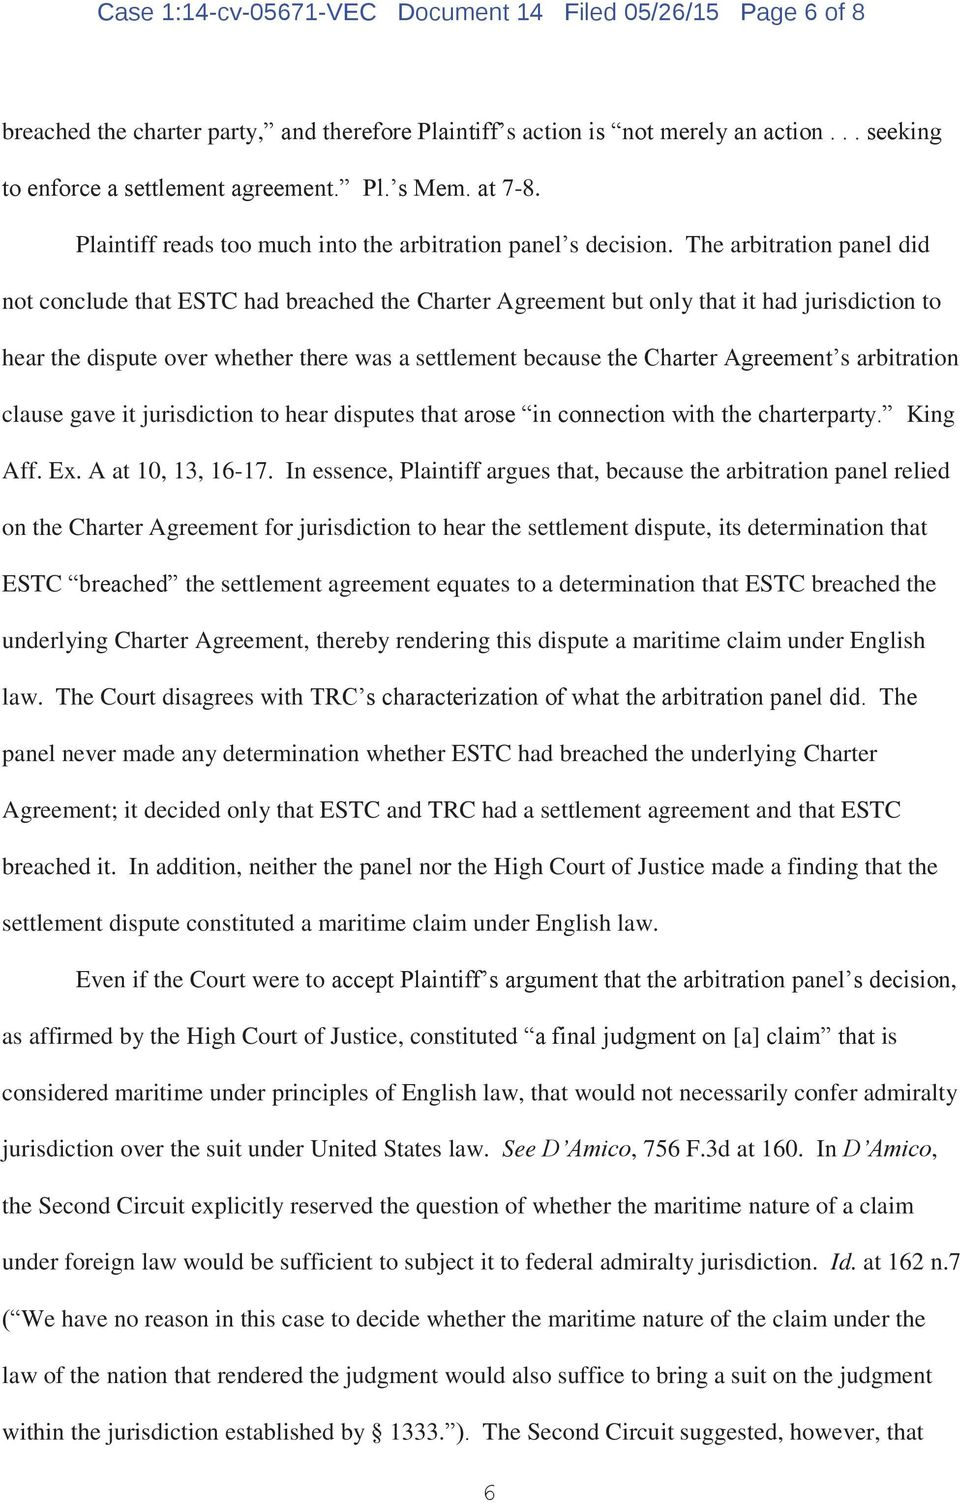 The arbitration panel did not conclude that ESTC had breached the Charter Agreement but only that it had jurisdiction to hear the dispute over whether there was a settlement because the Charter